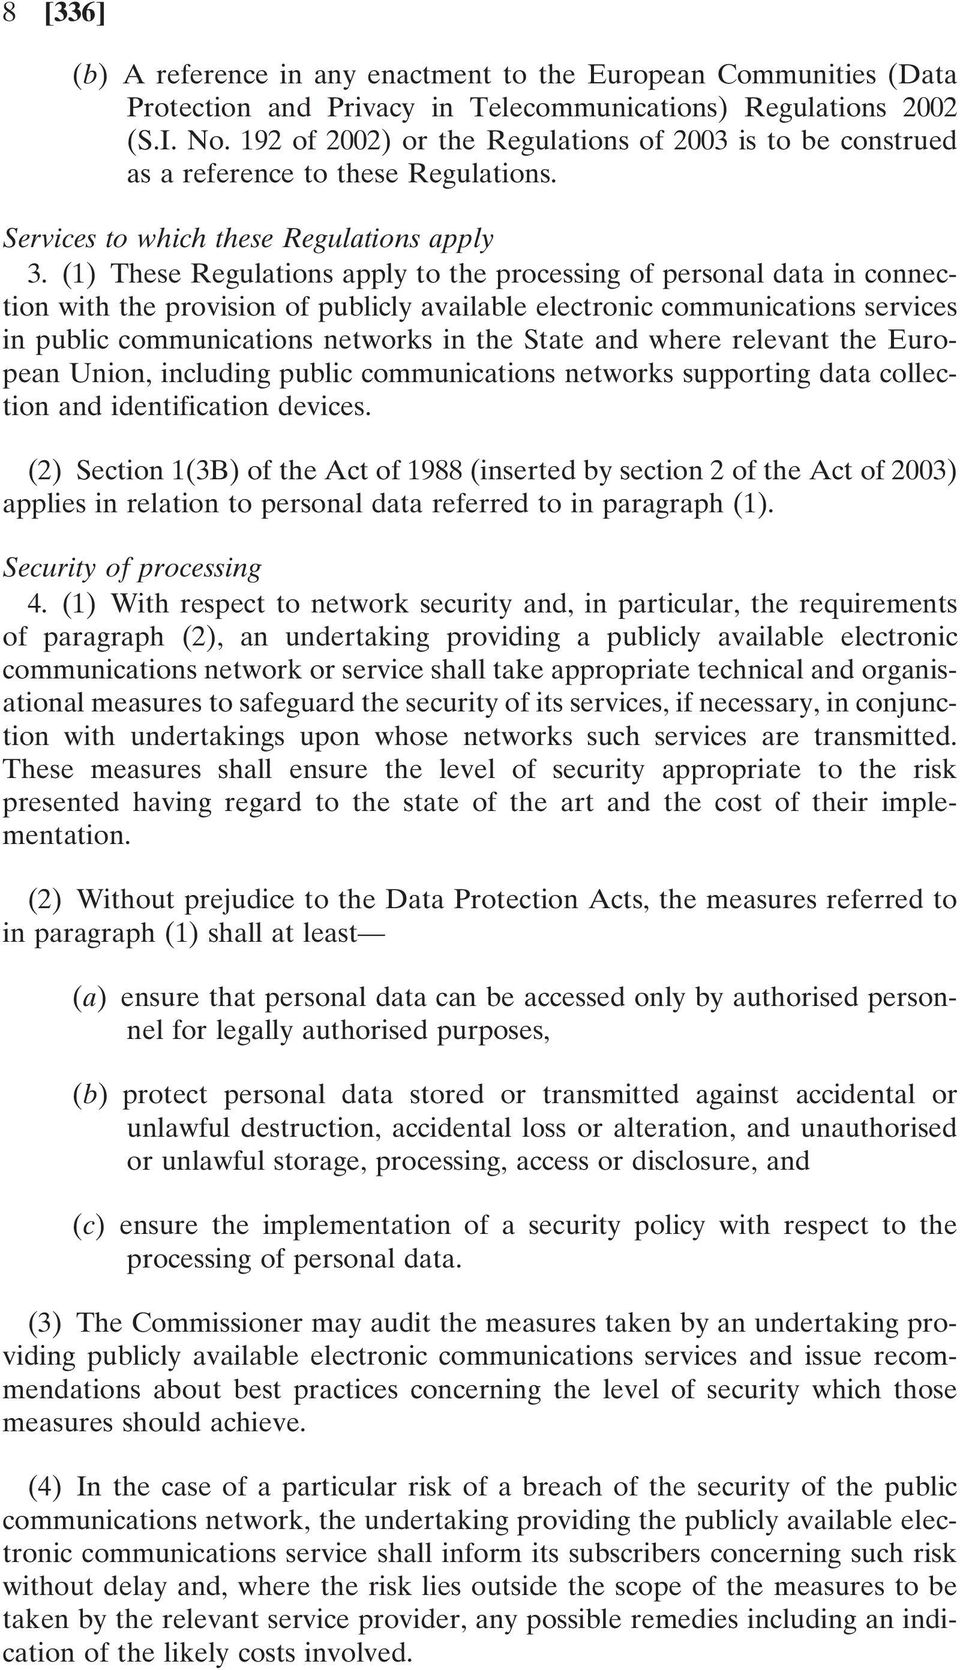 (1) These Regulations apply to the processing of personal data in connection with the provision of publicly available electronic communications services in public communications networks in the State